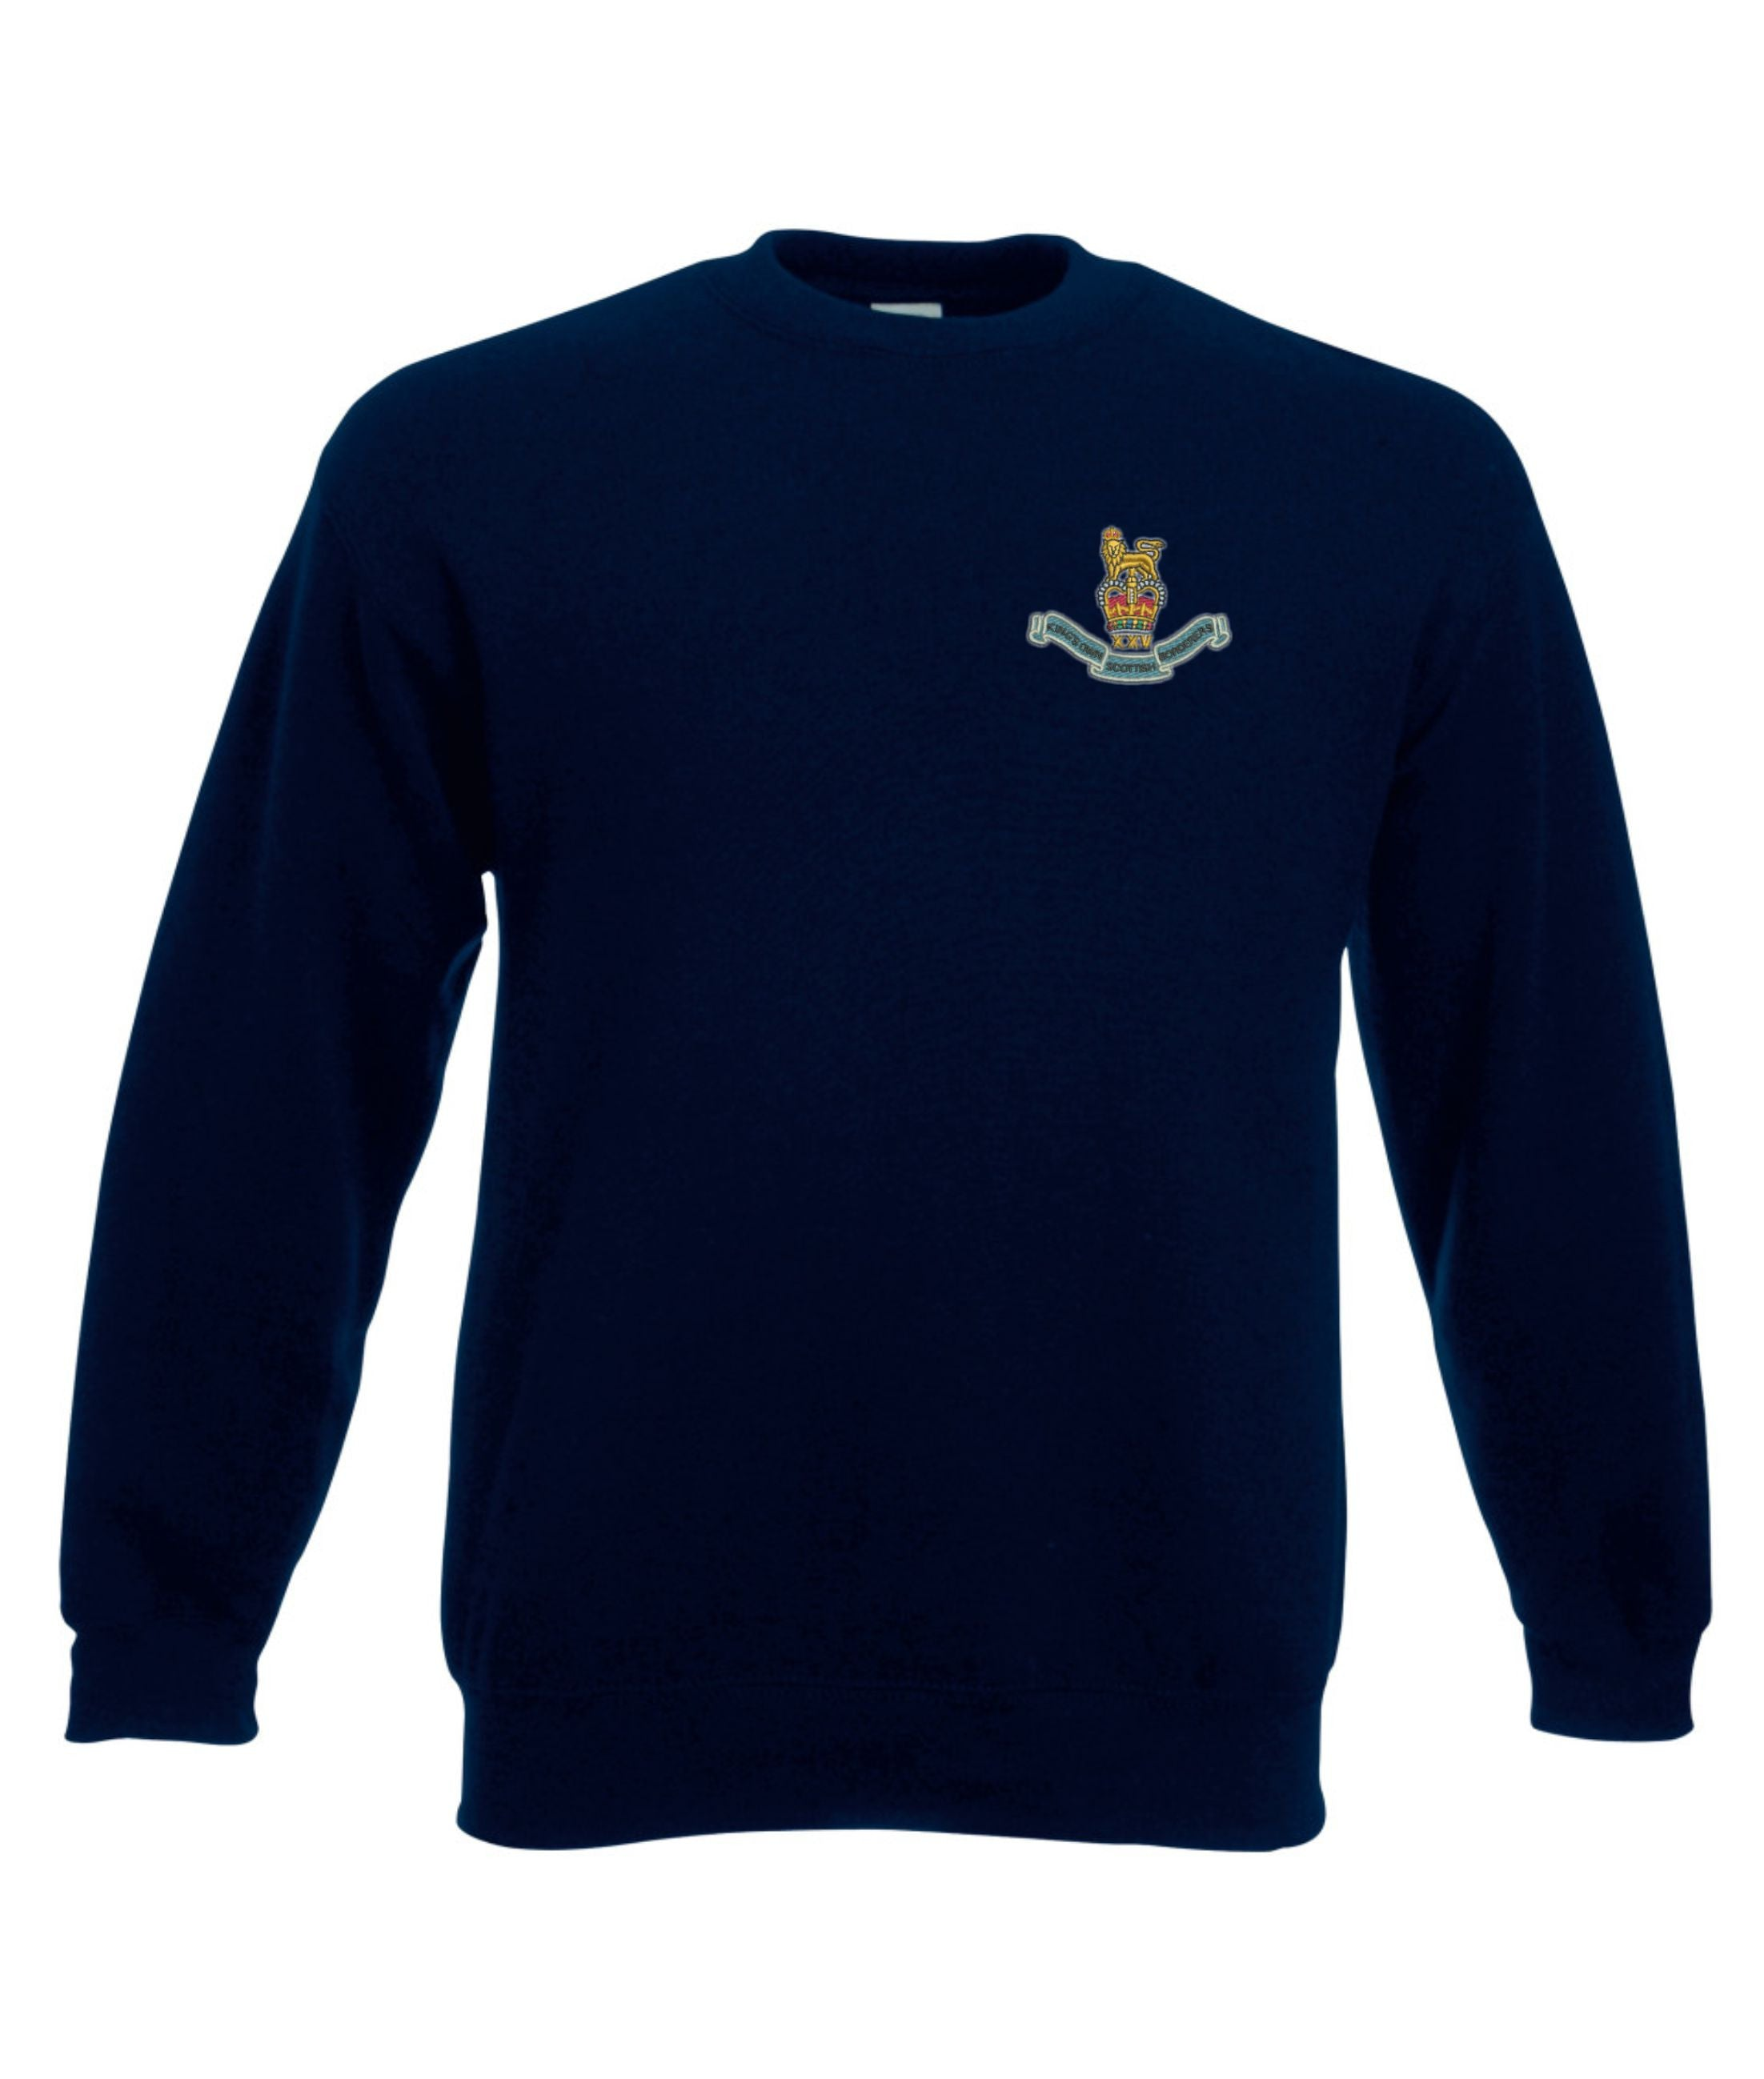 Scottish Borderers sweatshirts